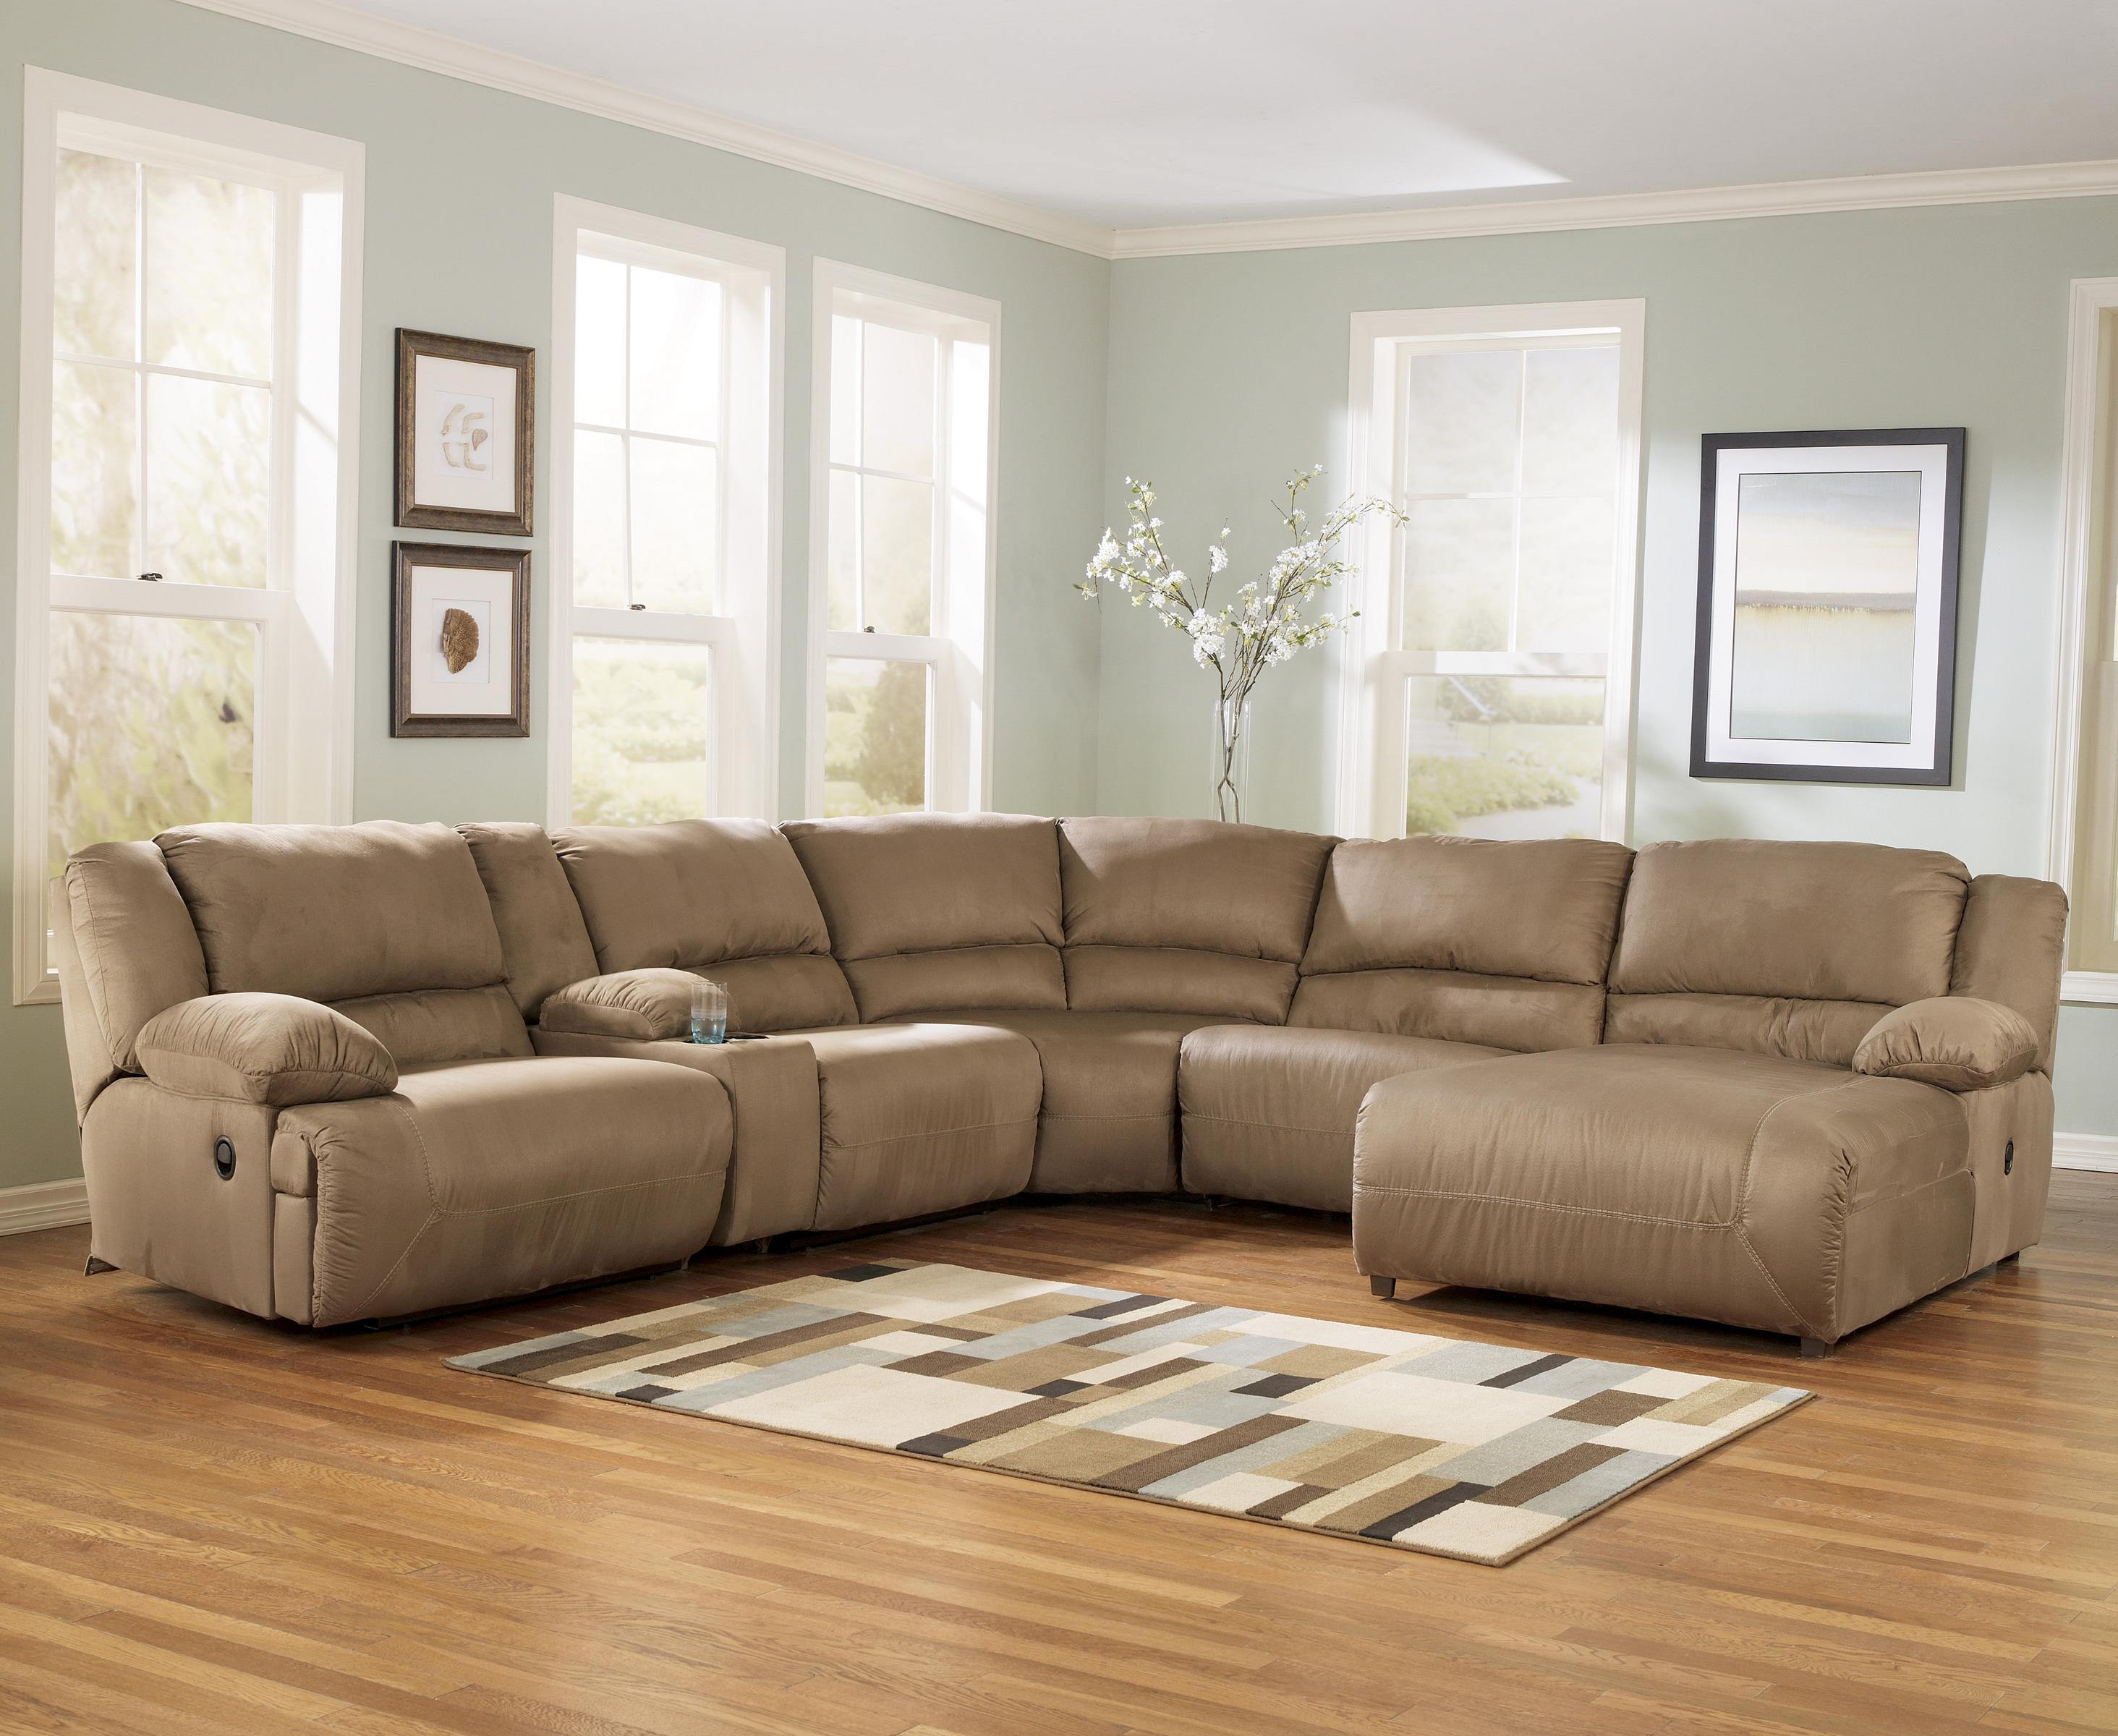 Attirant 6 Piece Motion Sectional With Right Chaise And Console